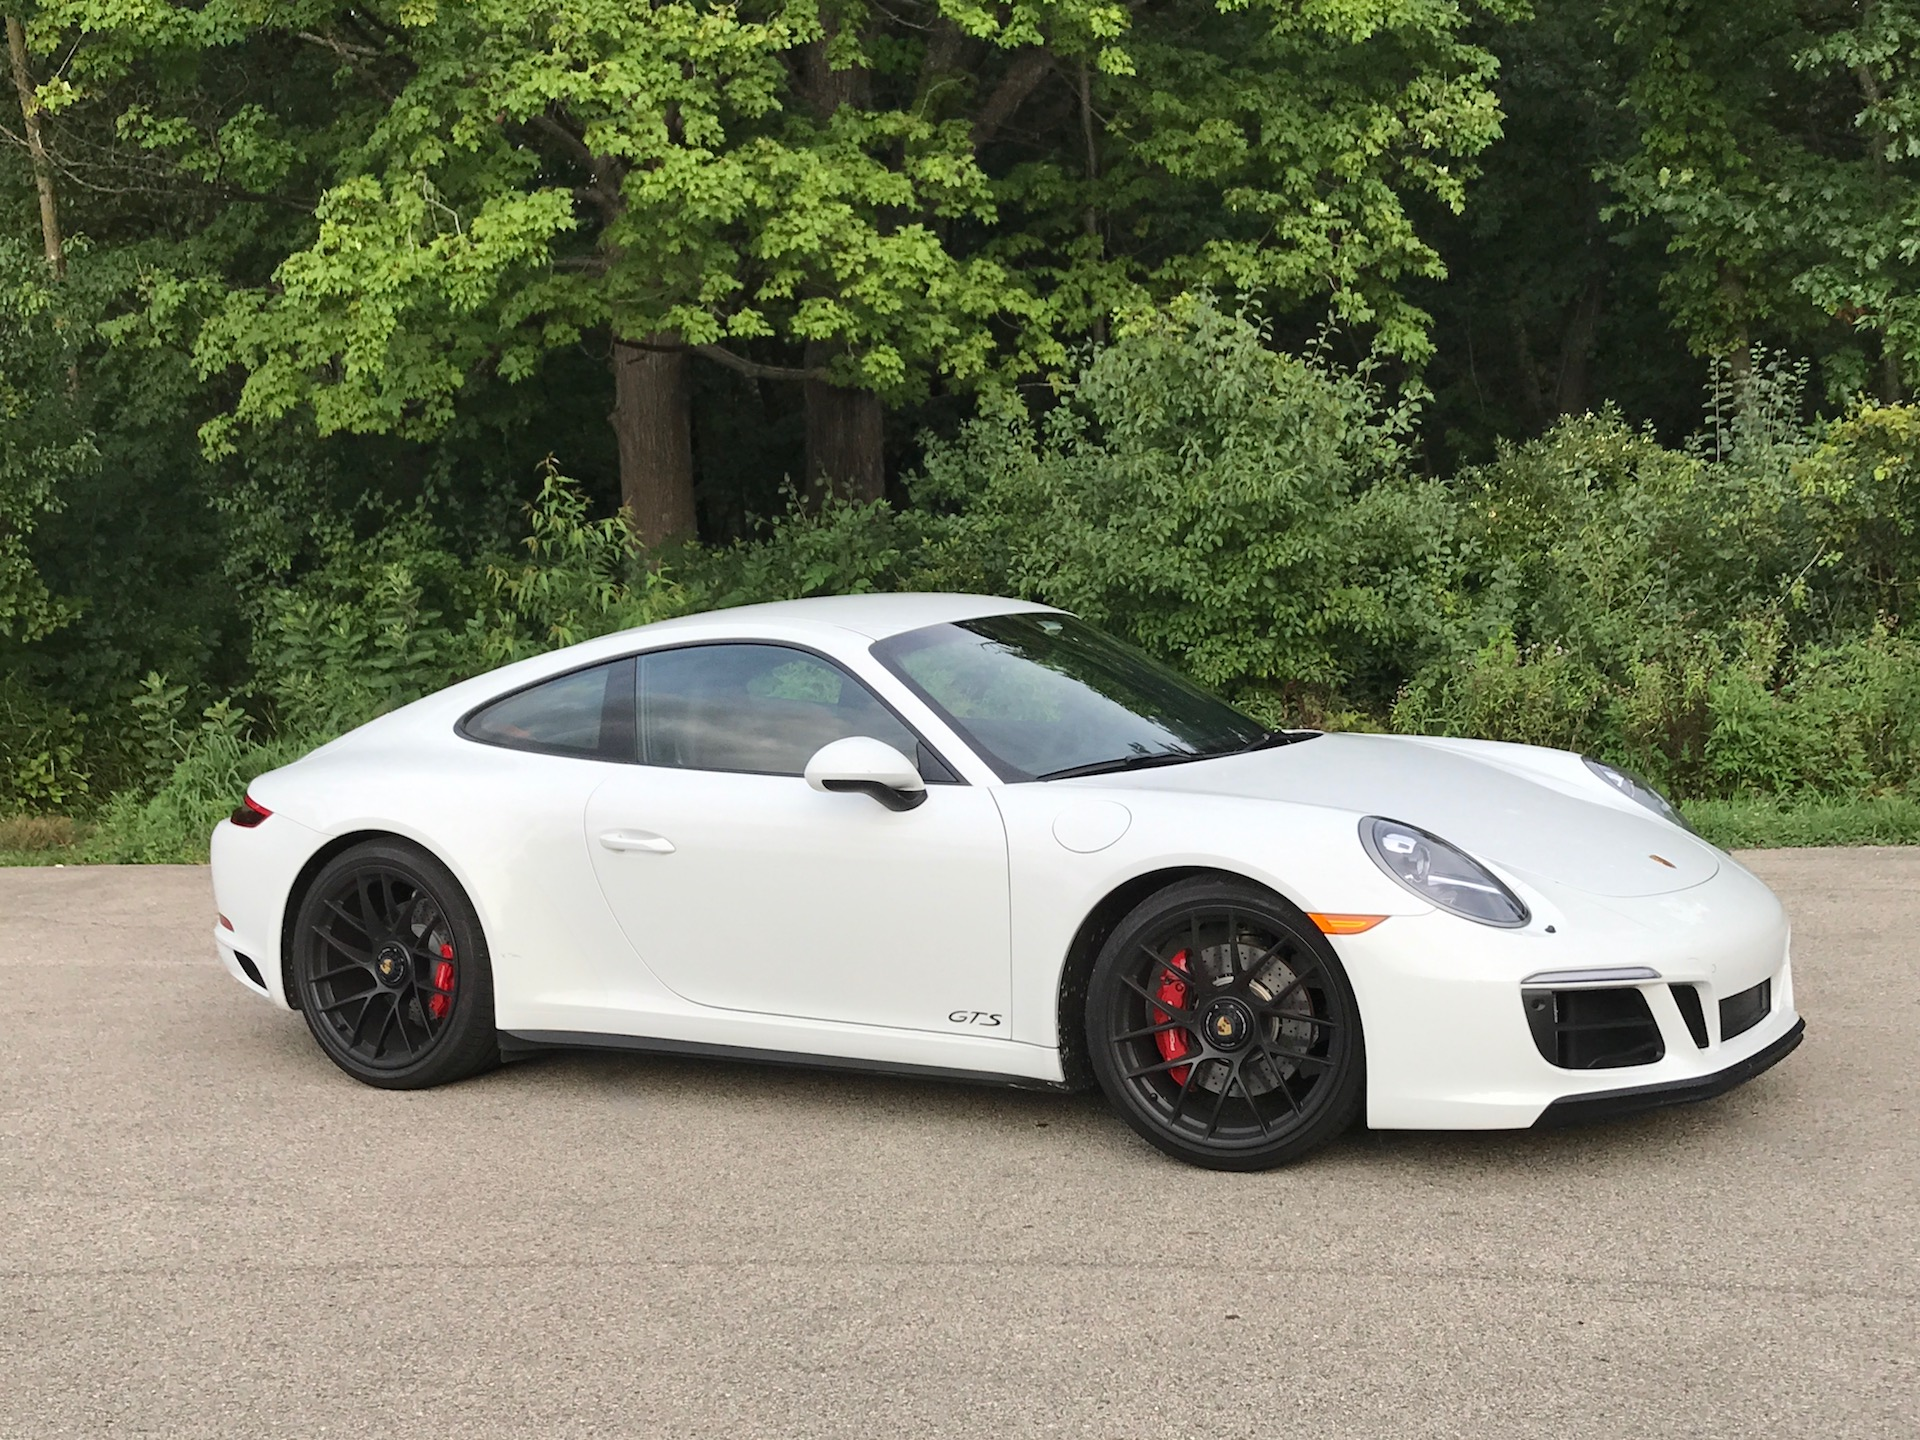 2017 Porsche 911 Carrera 4 Gts Living With A Street And